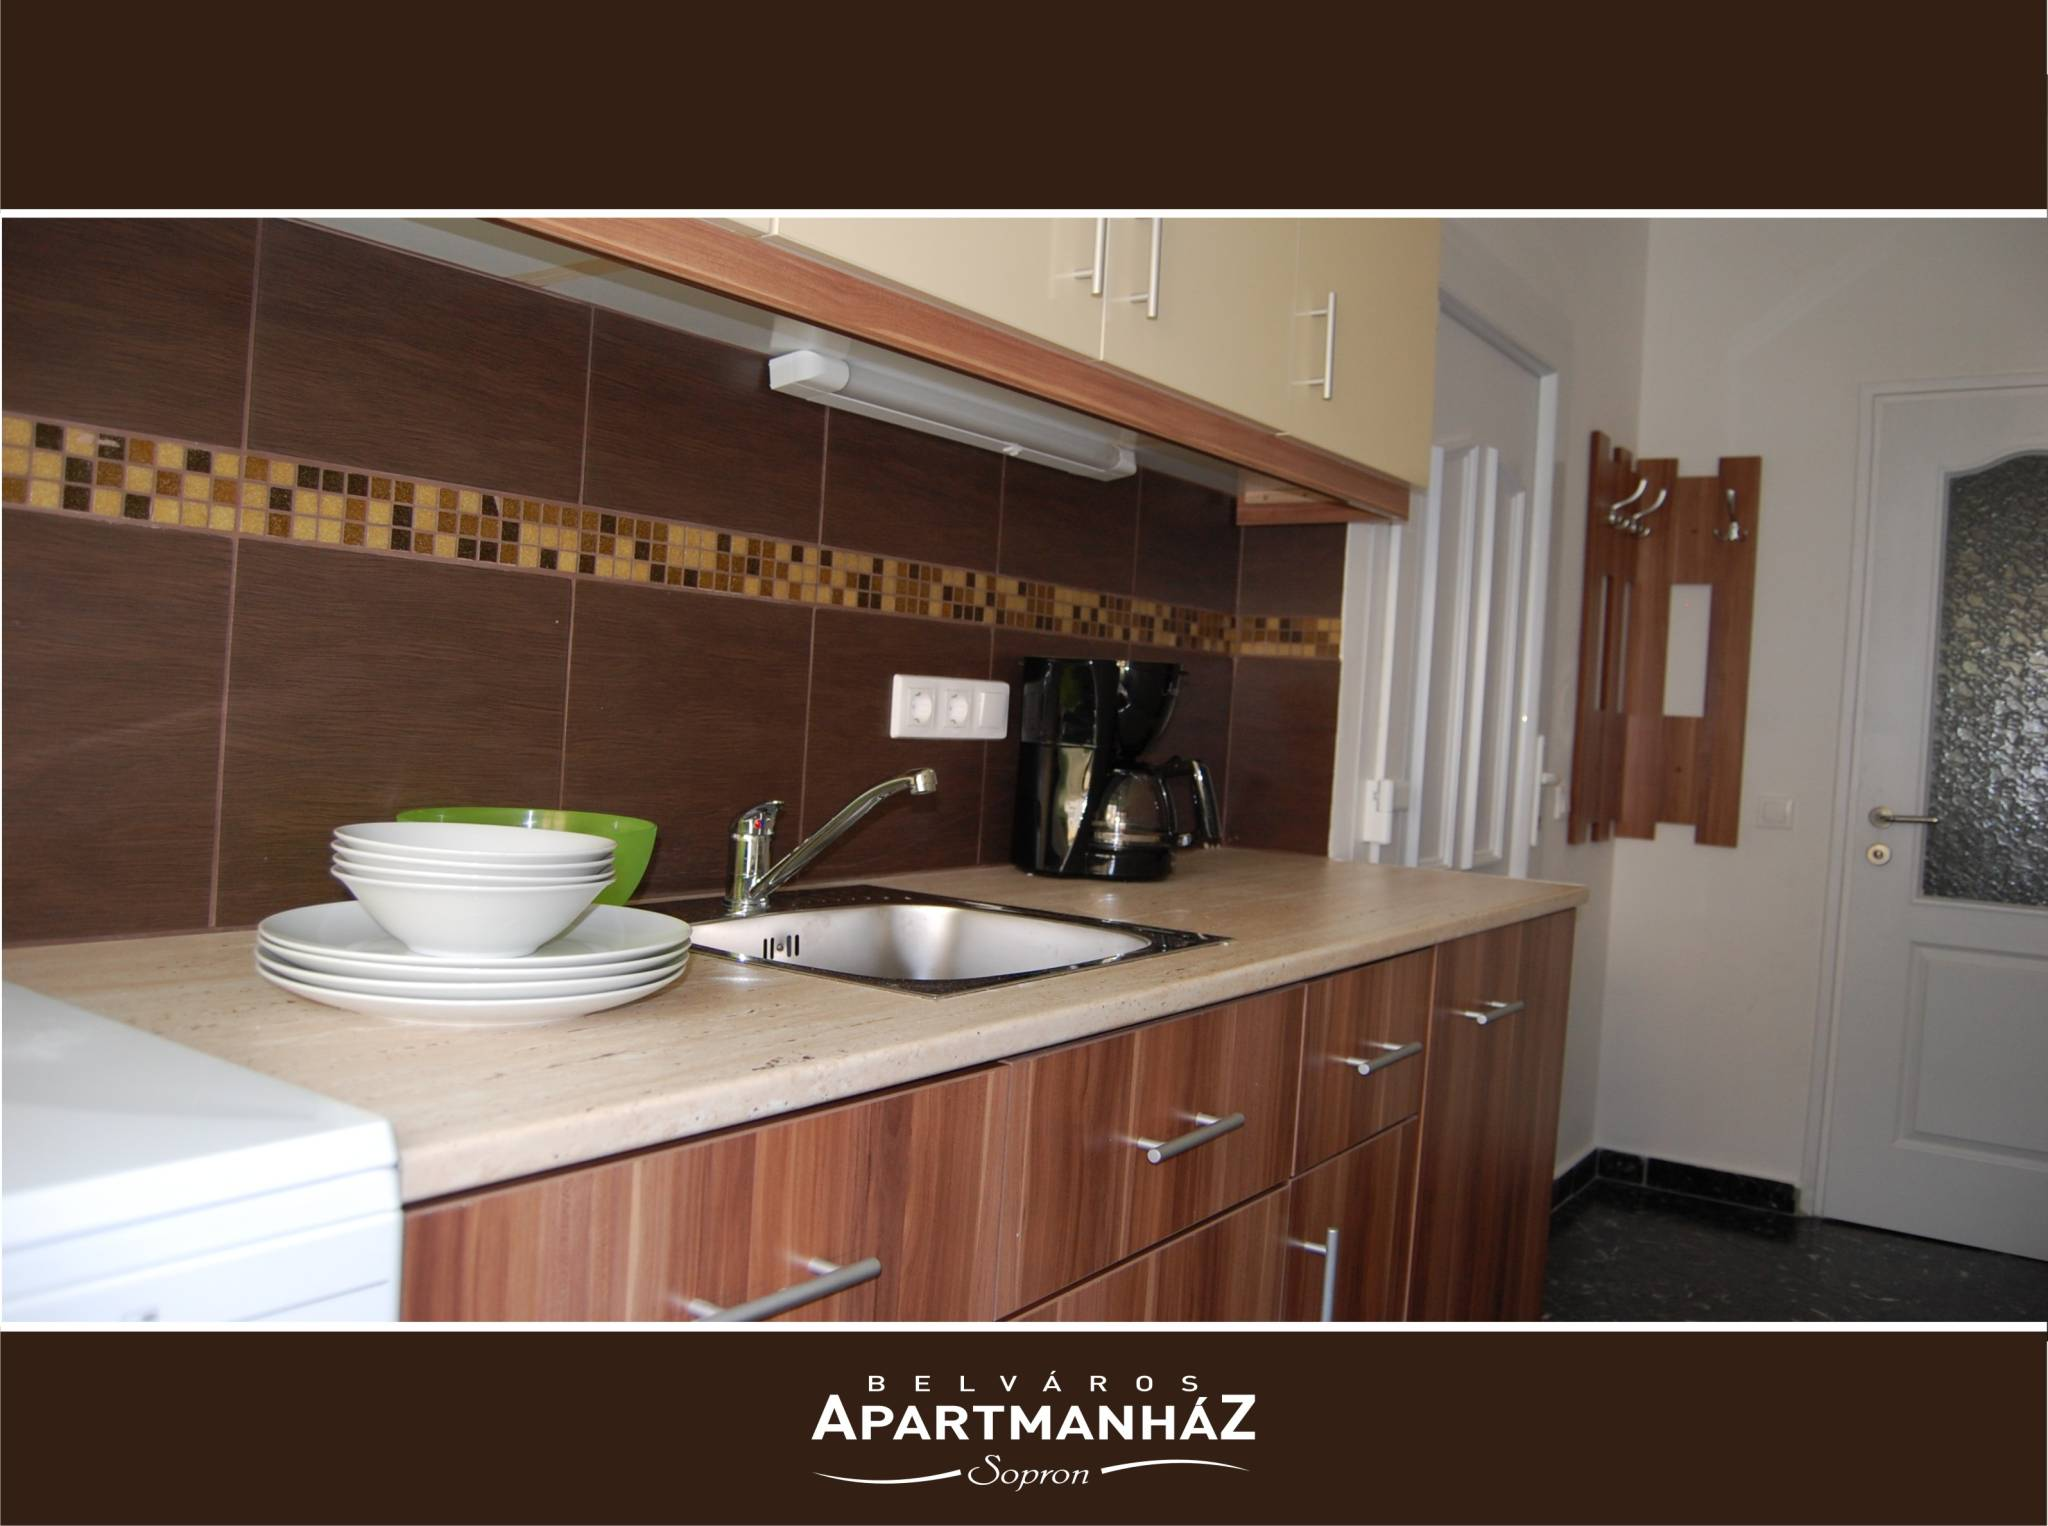 Frdszobs 4 fs apartman 2 hltrrel (ptgyazhat) - 121a0619-e9cf-6124-f6c3-c8338ecbd311